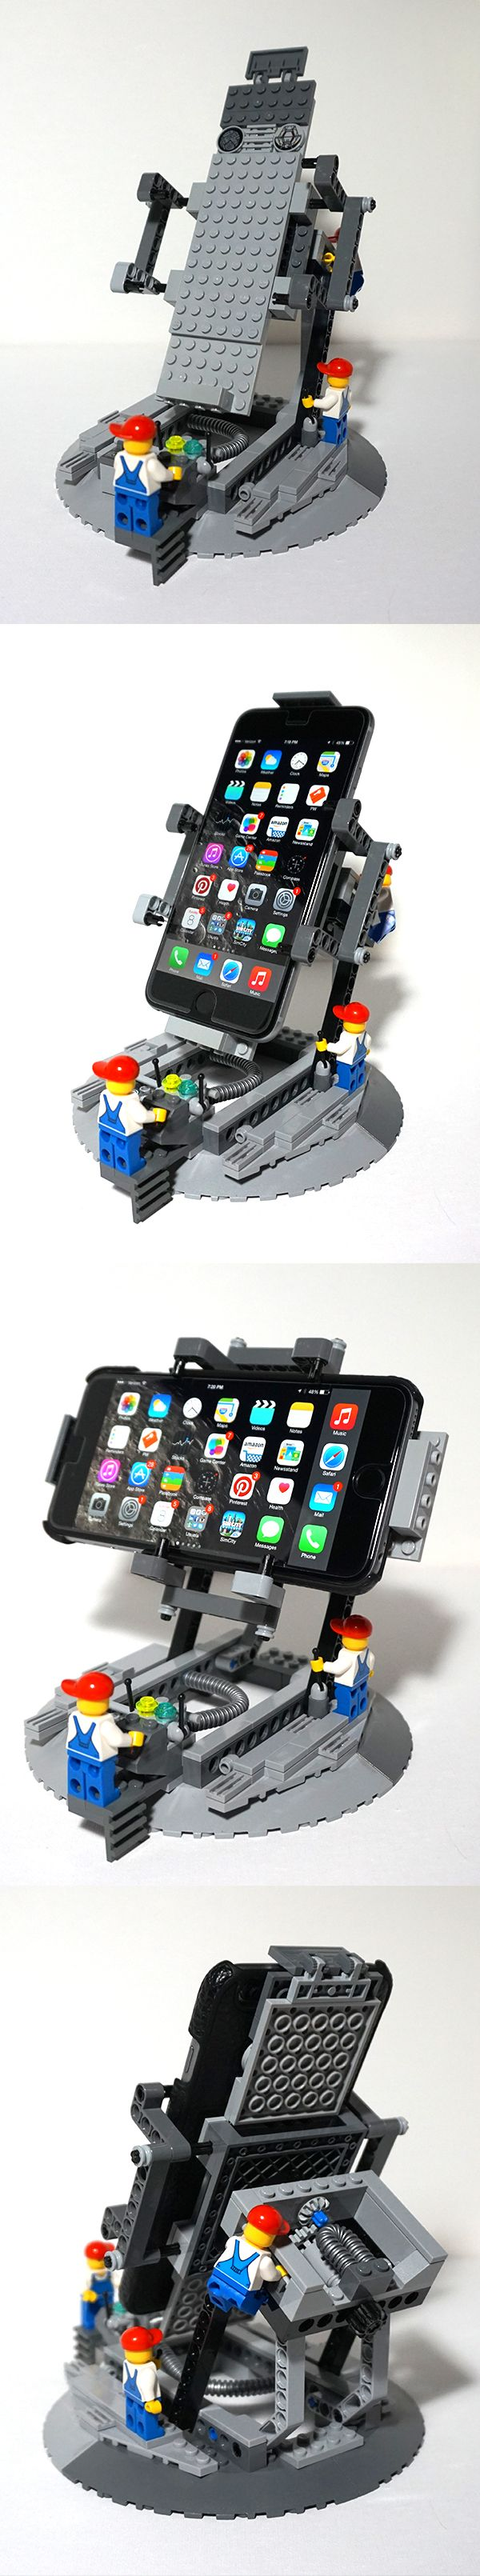 iPhone 6 Plus stand. Dock turns to portrait or landscape. The gears keep it steady. It's also resizable to fit any cover.